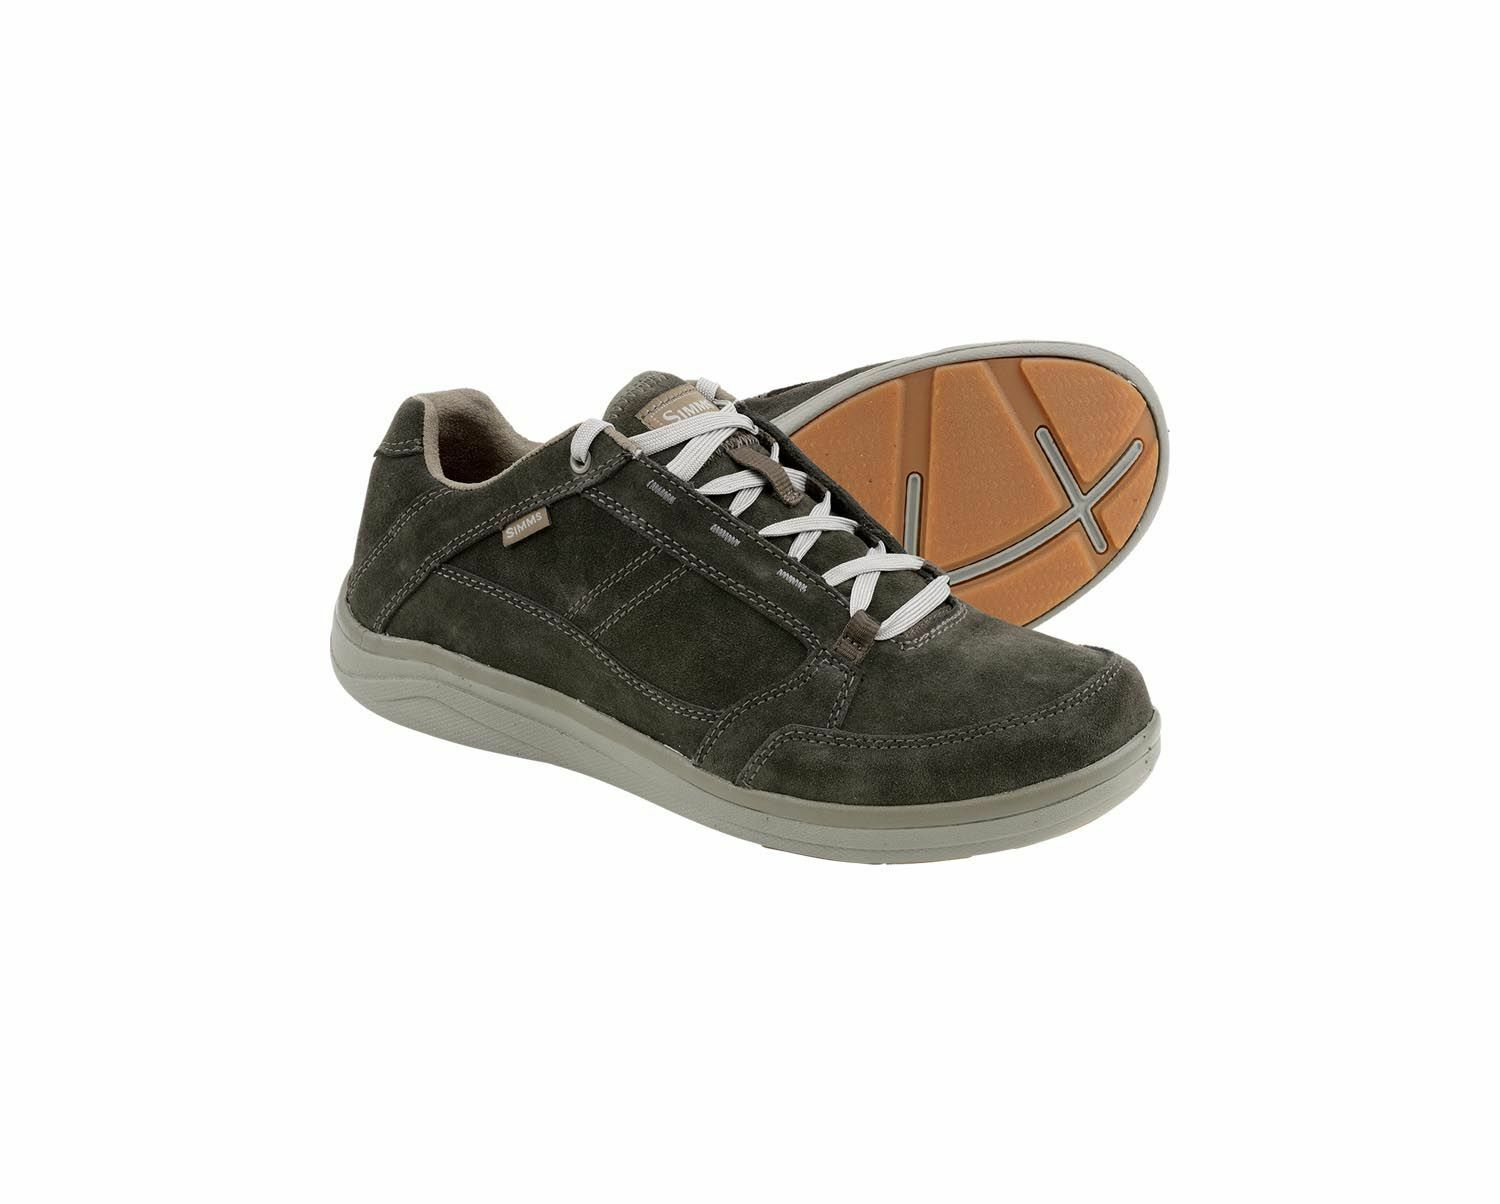 Simms Westshore Leather shoes Dark Olive -  Size 9.5 -CLOSEOUT  no tax